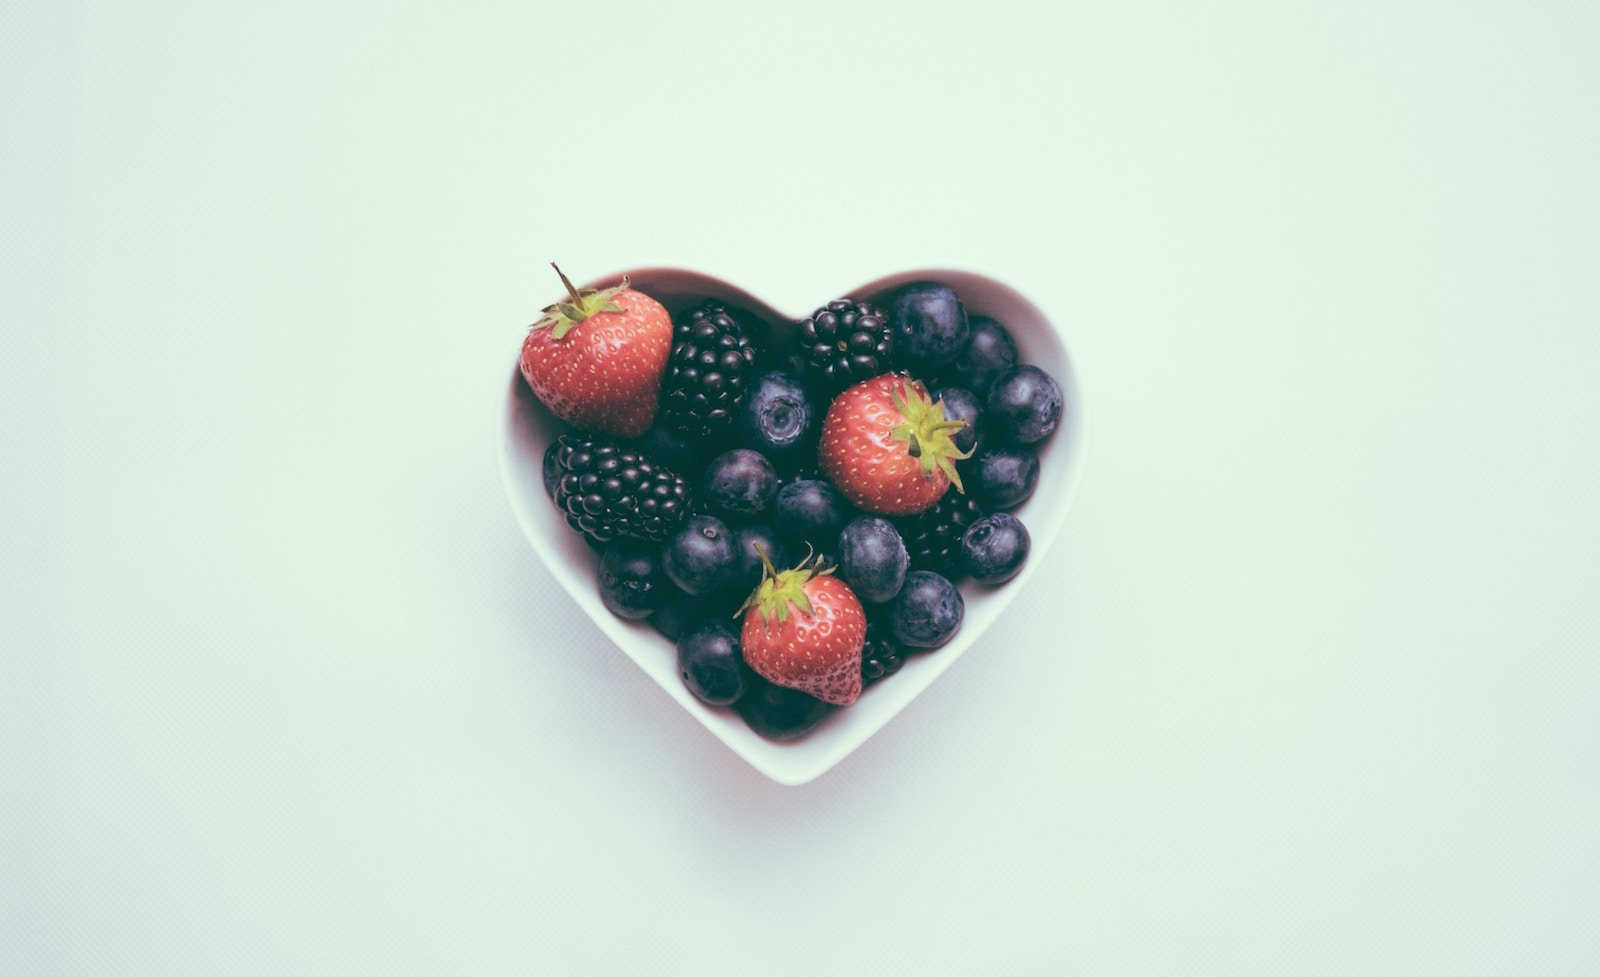 Bowl Of Fruit In Heart Shaped Bowl - For A Healthy Heart